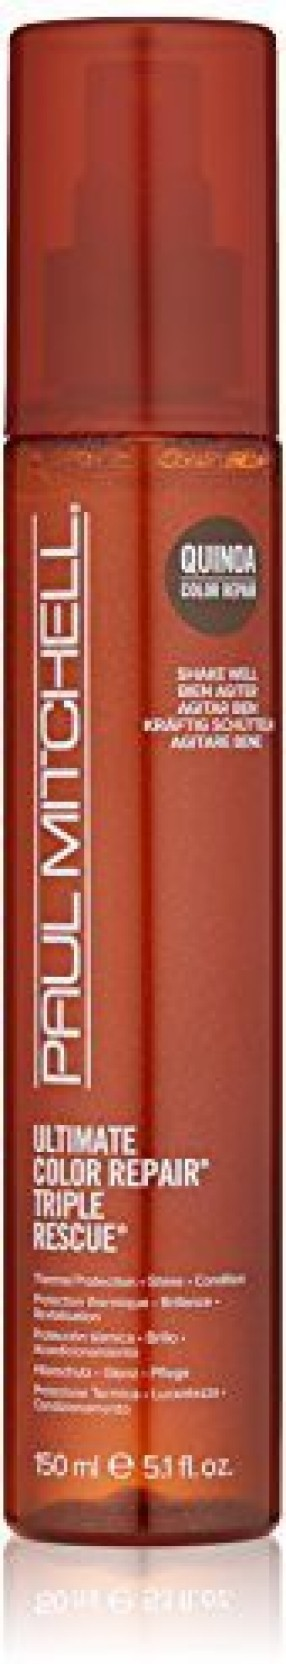 Paul Mitchell Ultimate Color Repair Triple Rescue Hair Spray